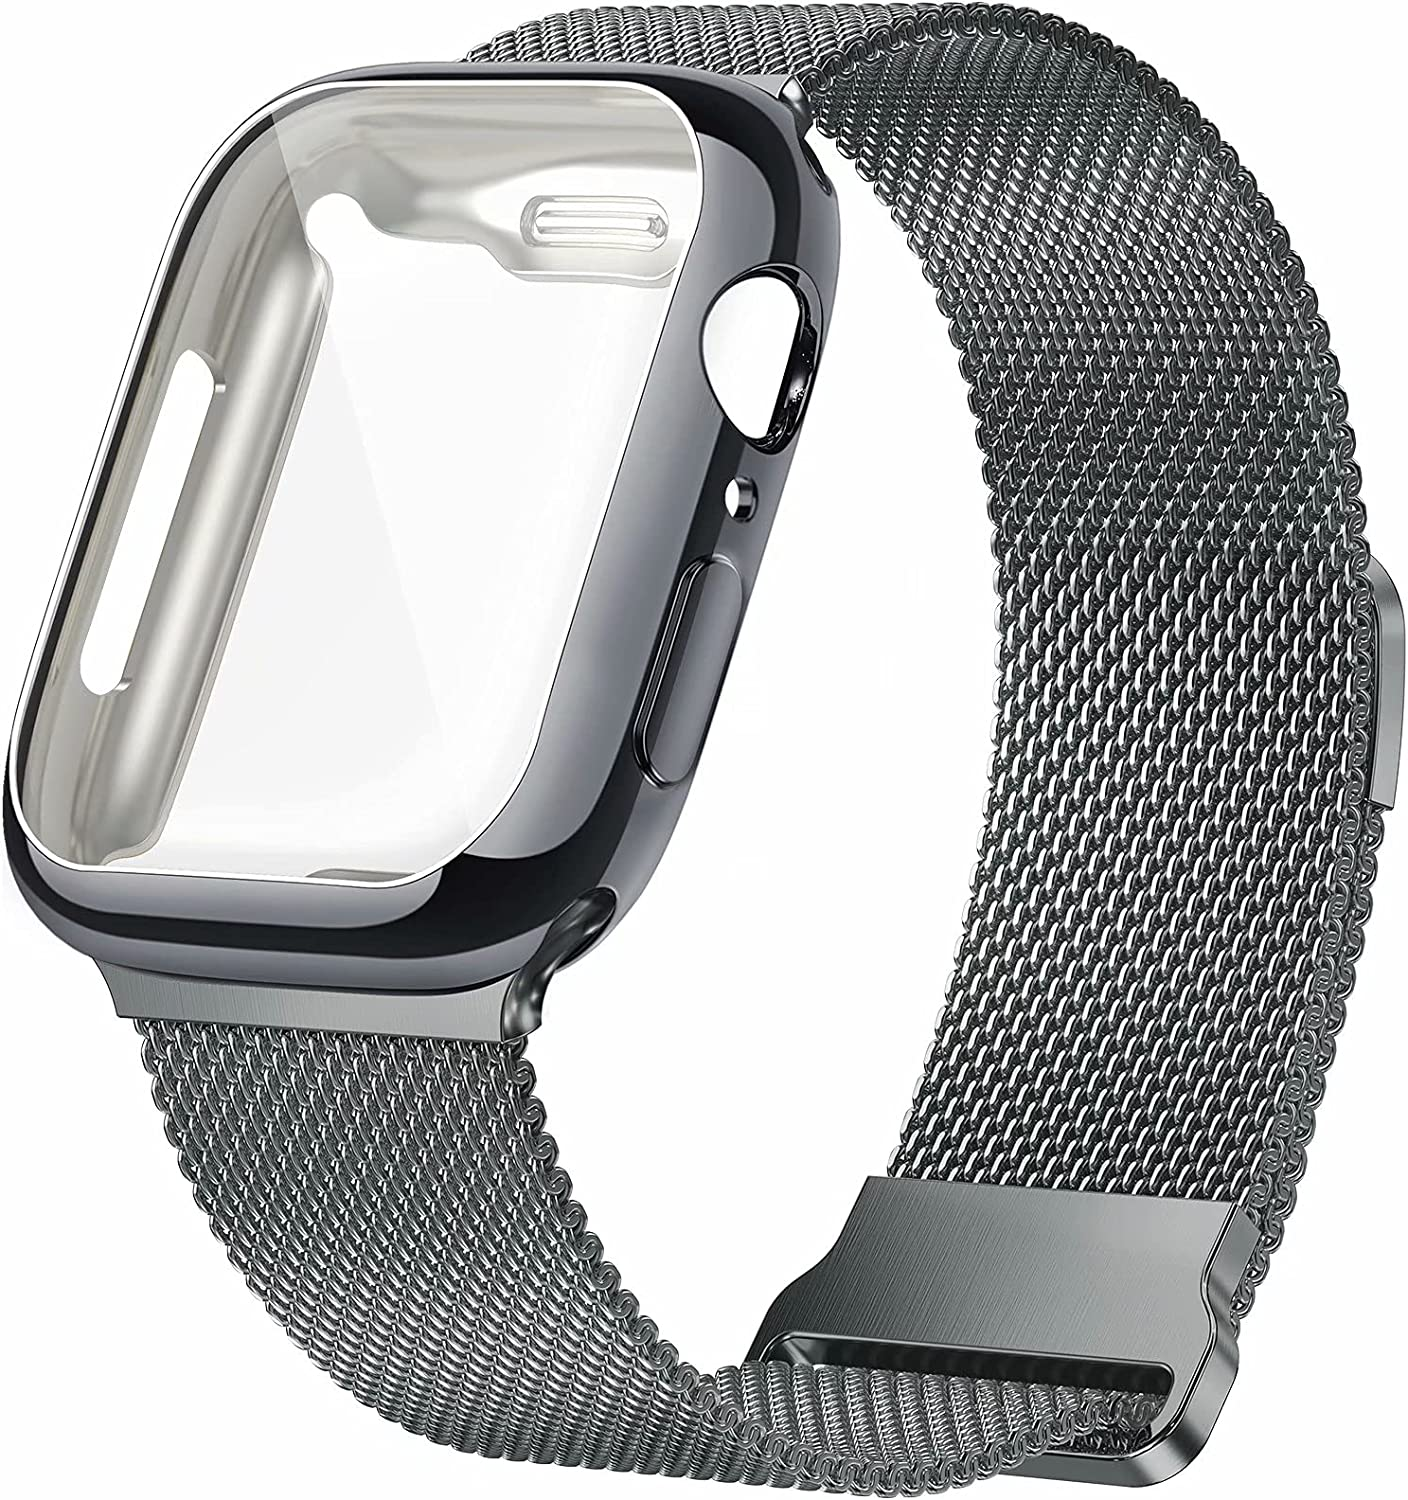 JuQBanke Metal Magnetic Bands Compatible for Apple Watch Band 44mm with Case, Stainless Steel Milanese Mesh Loop Replacement Strap Compatible with iWatch Series SE 6/5/4/3/2/3 for Women Men,Space Gray